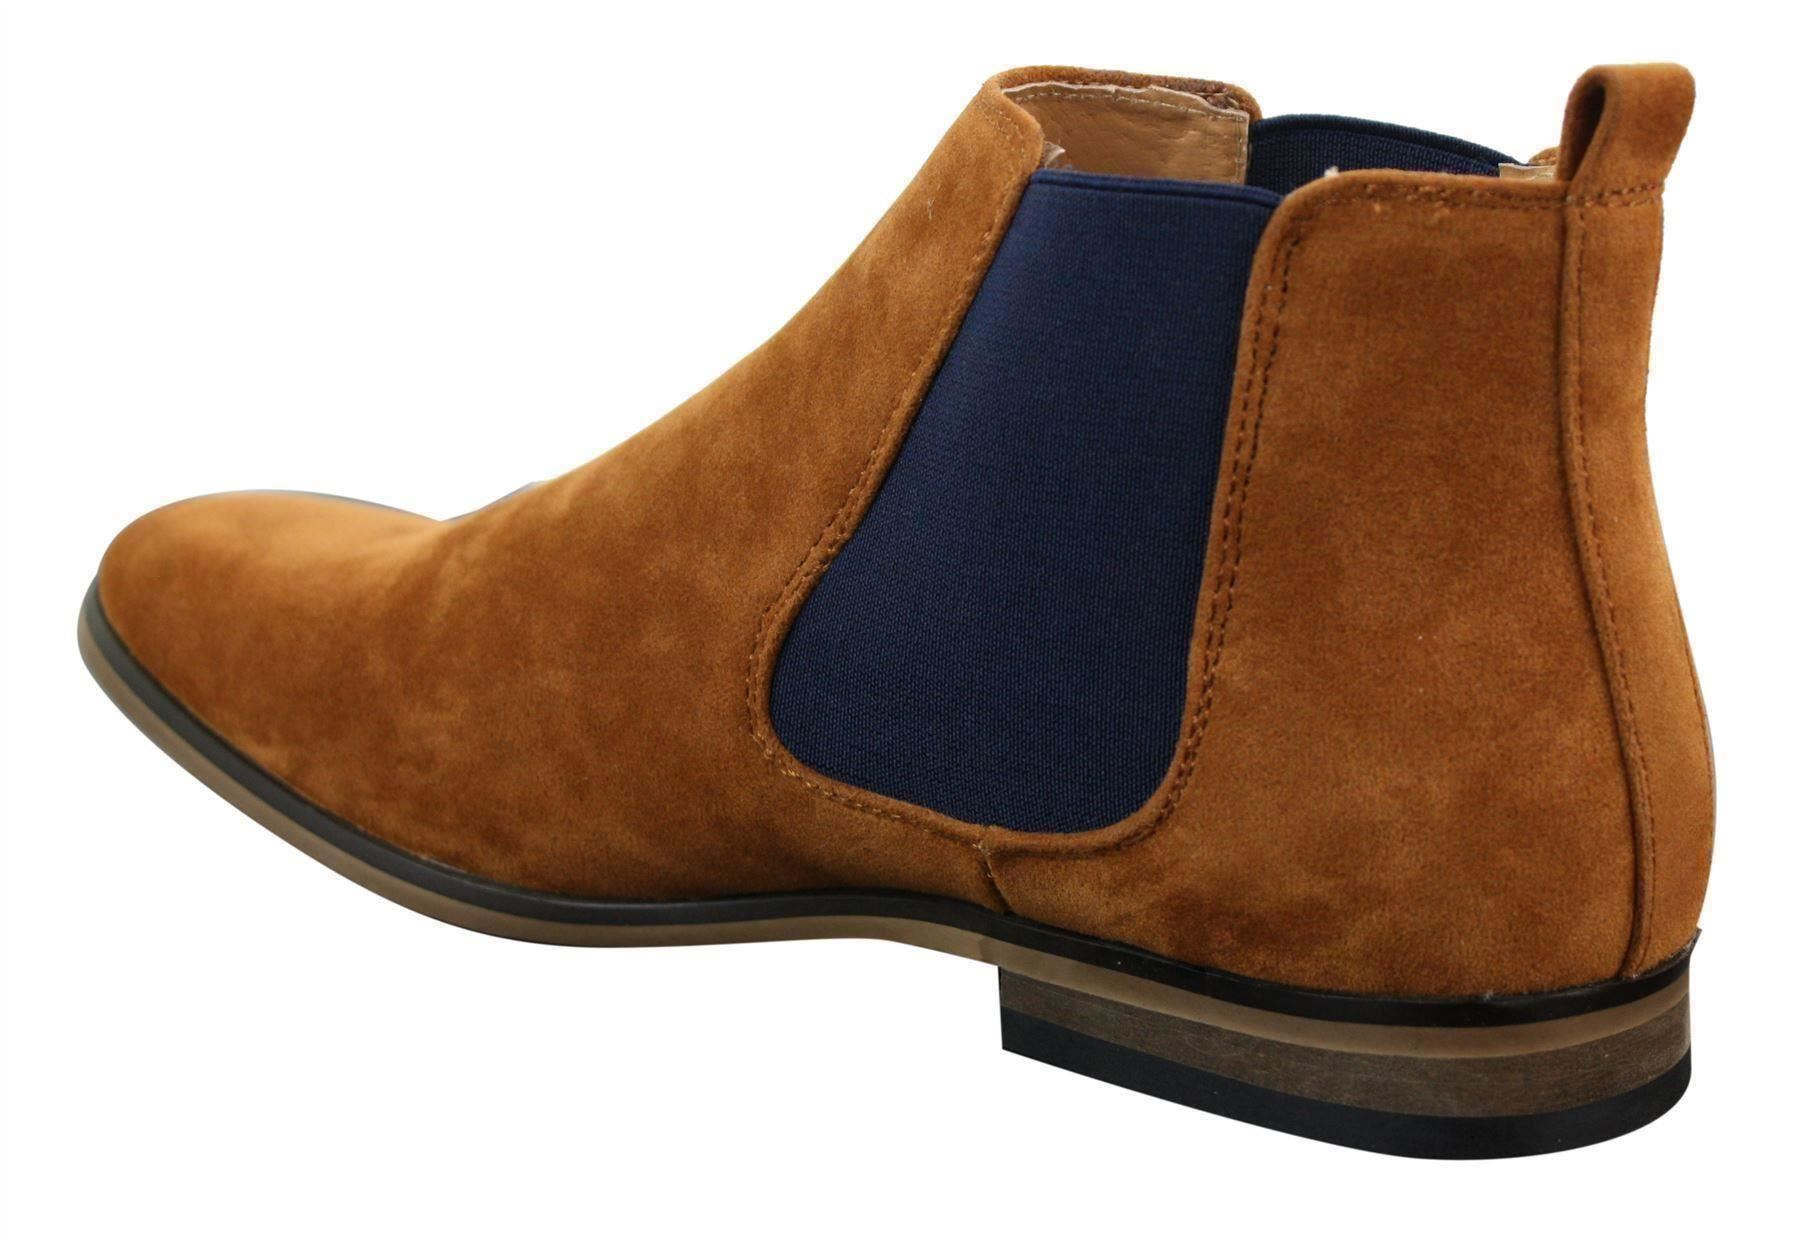 mens boots desert casual smart on suede slip comforter dealer chelsea italian comfortable most itm ankle